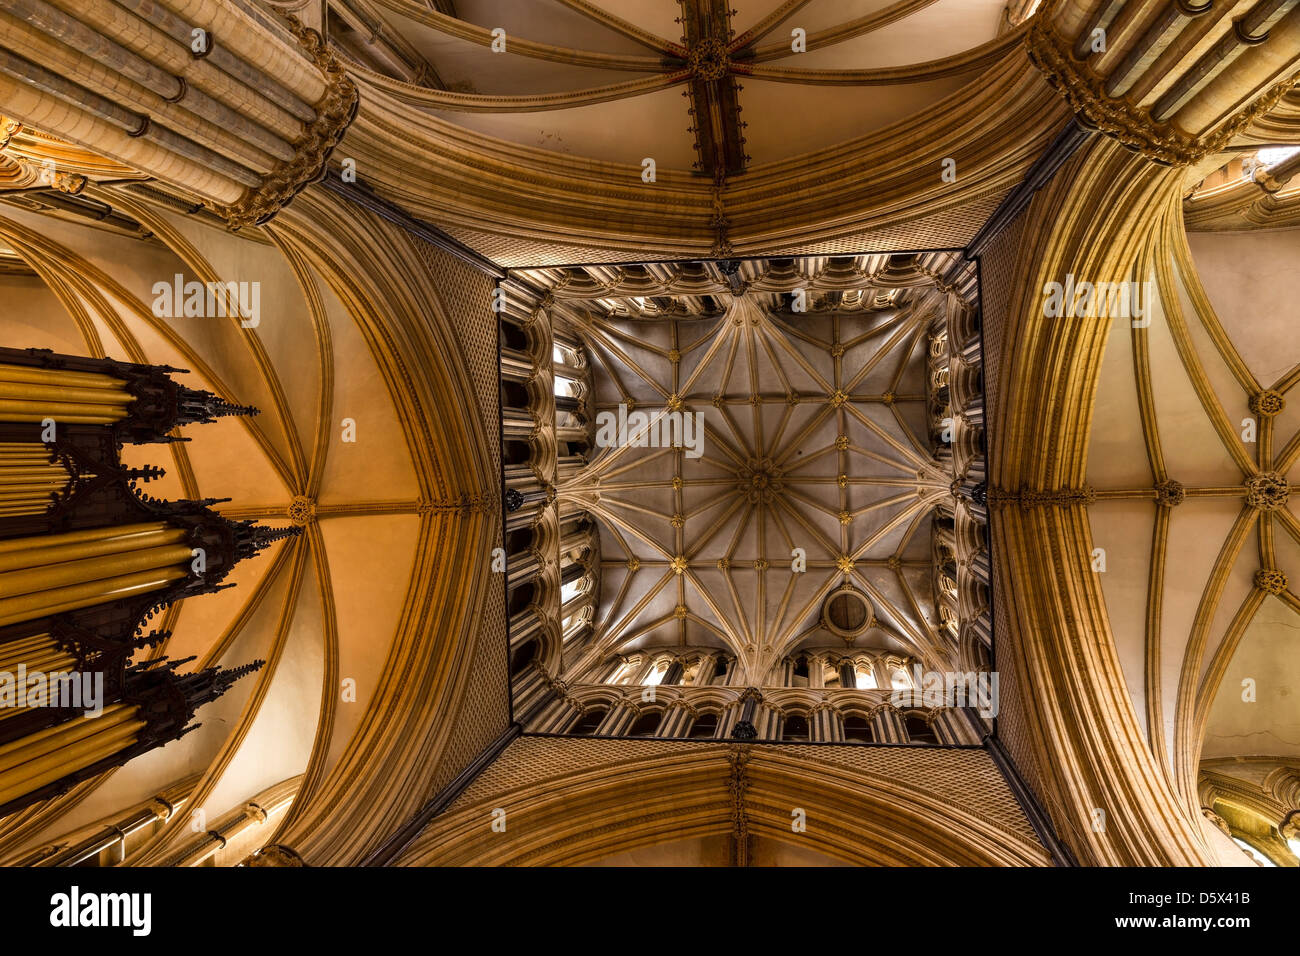 Pointed Gothic masonry arches, stone pillars and vaulted ceilings under the central tower of Lincoln Cathedral, Stock Photo